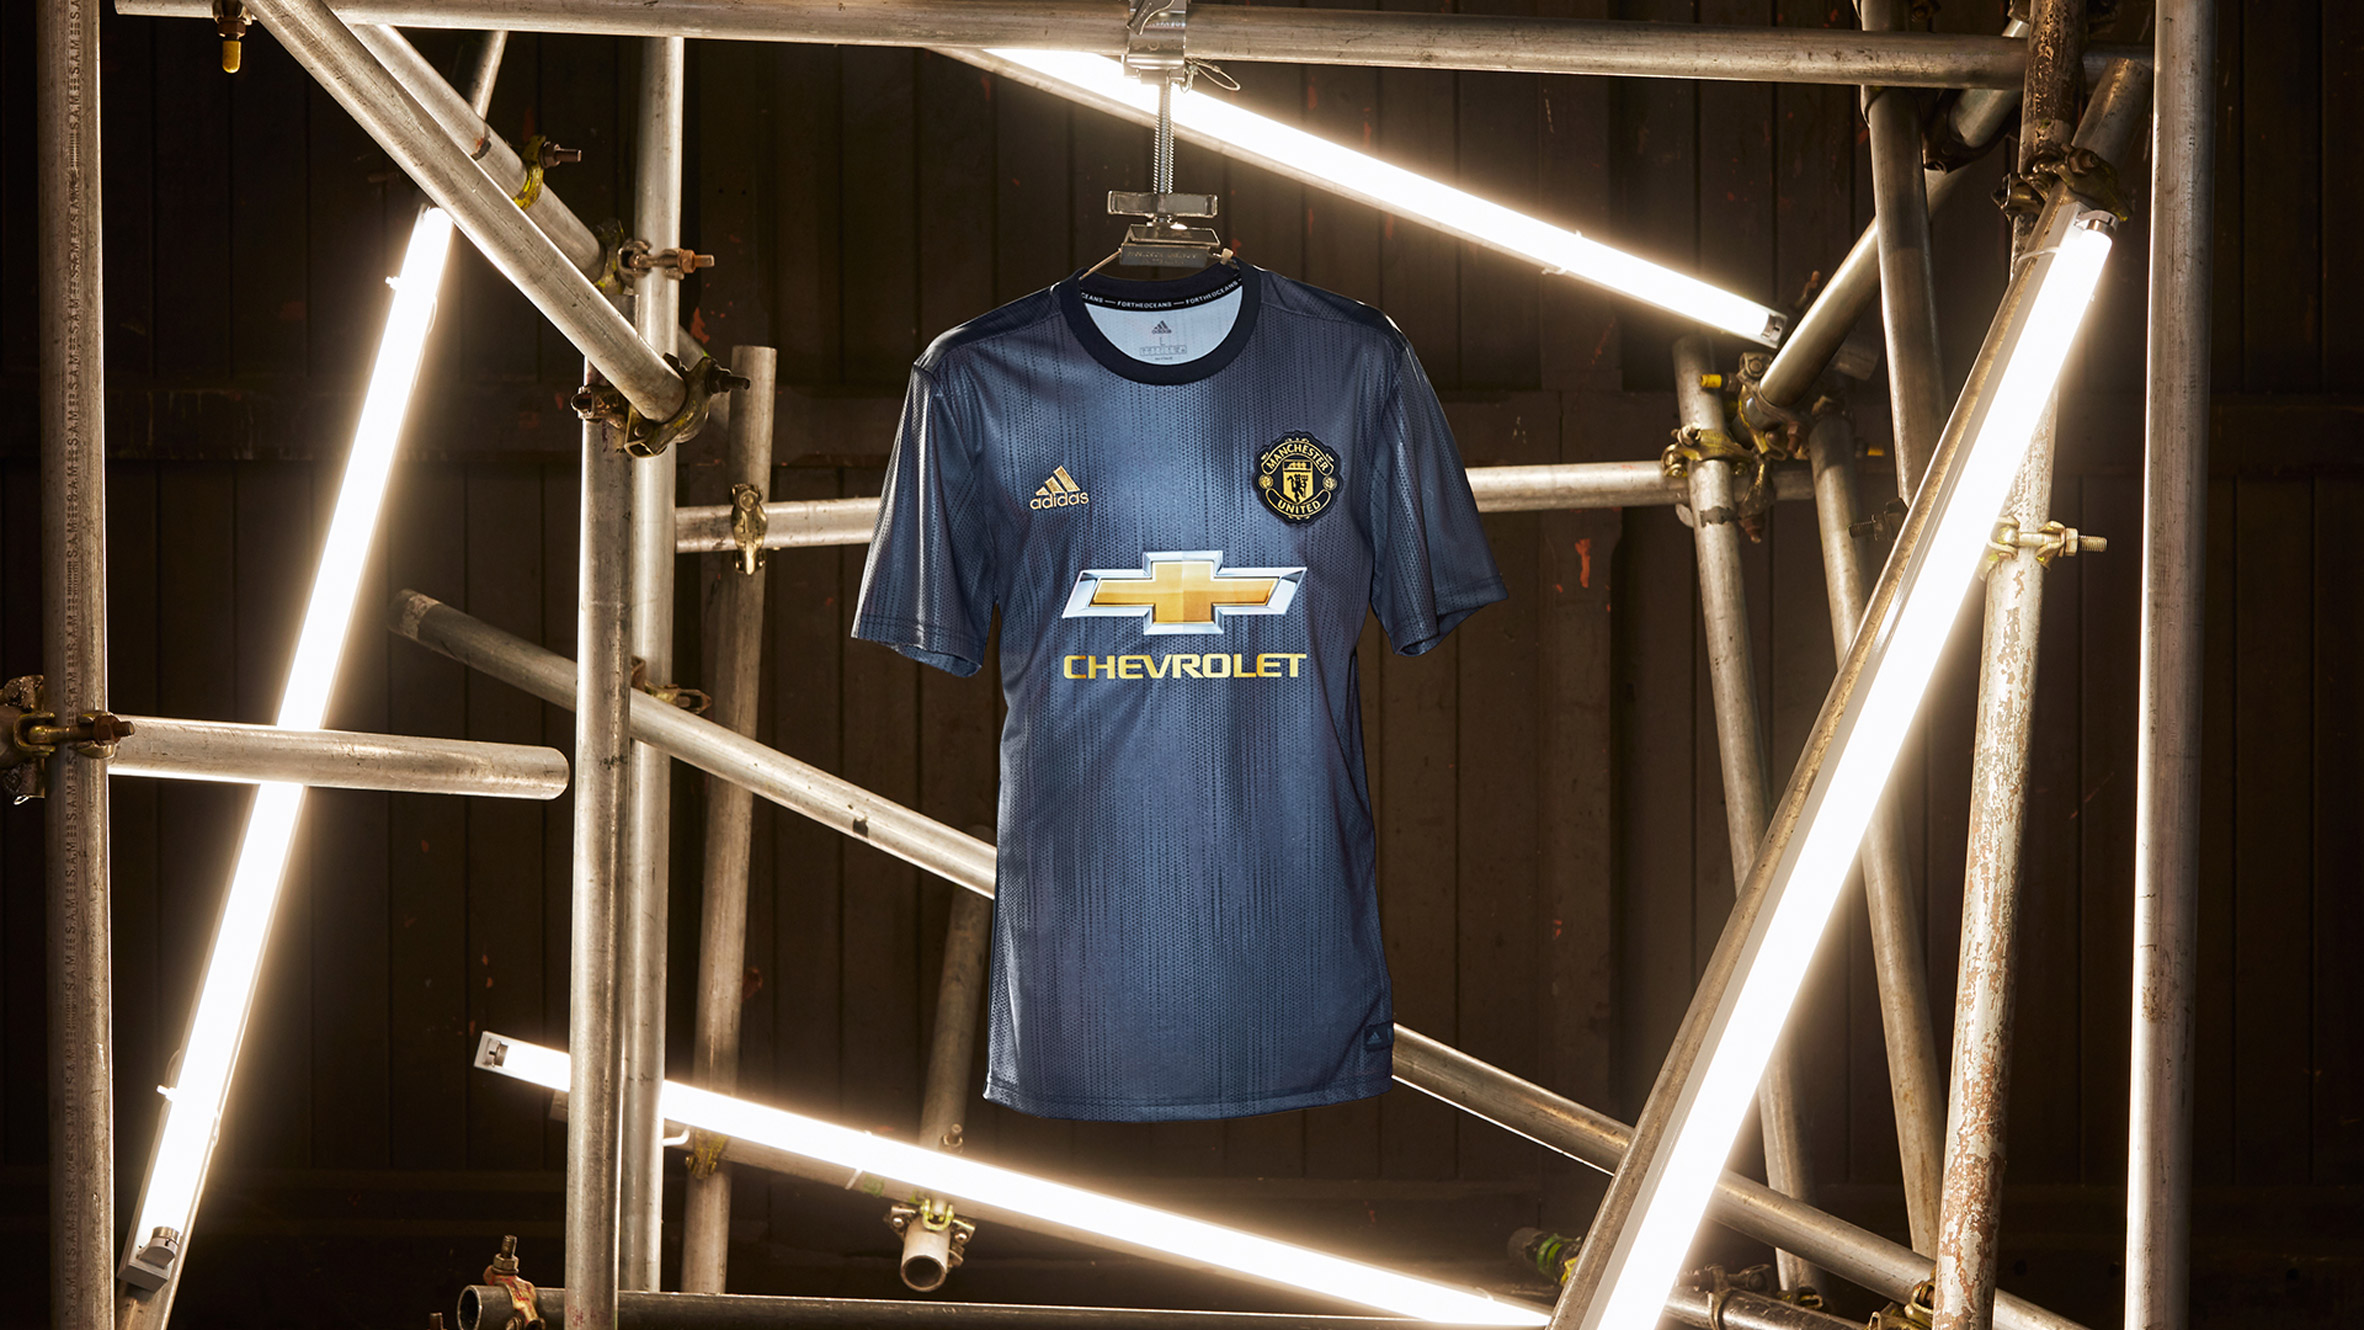 e51ab6a9d Adidas reveals Manchester United third kit made from ocean plastic